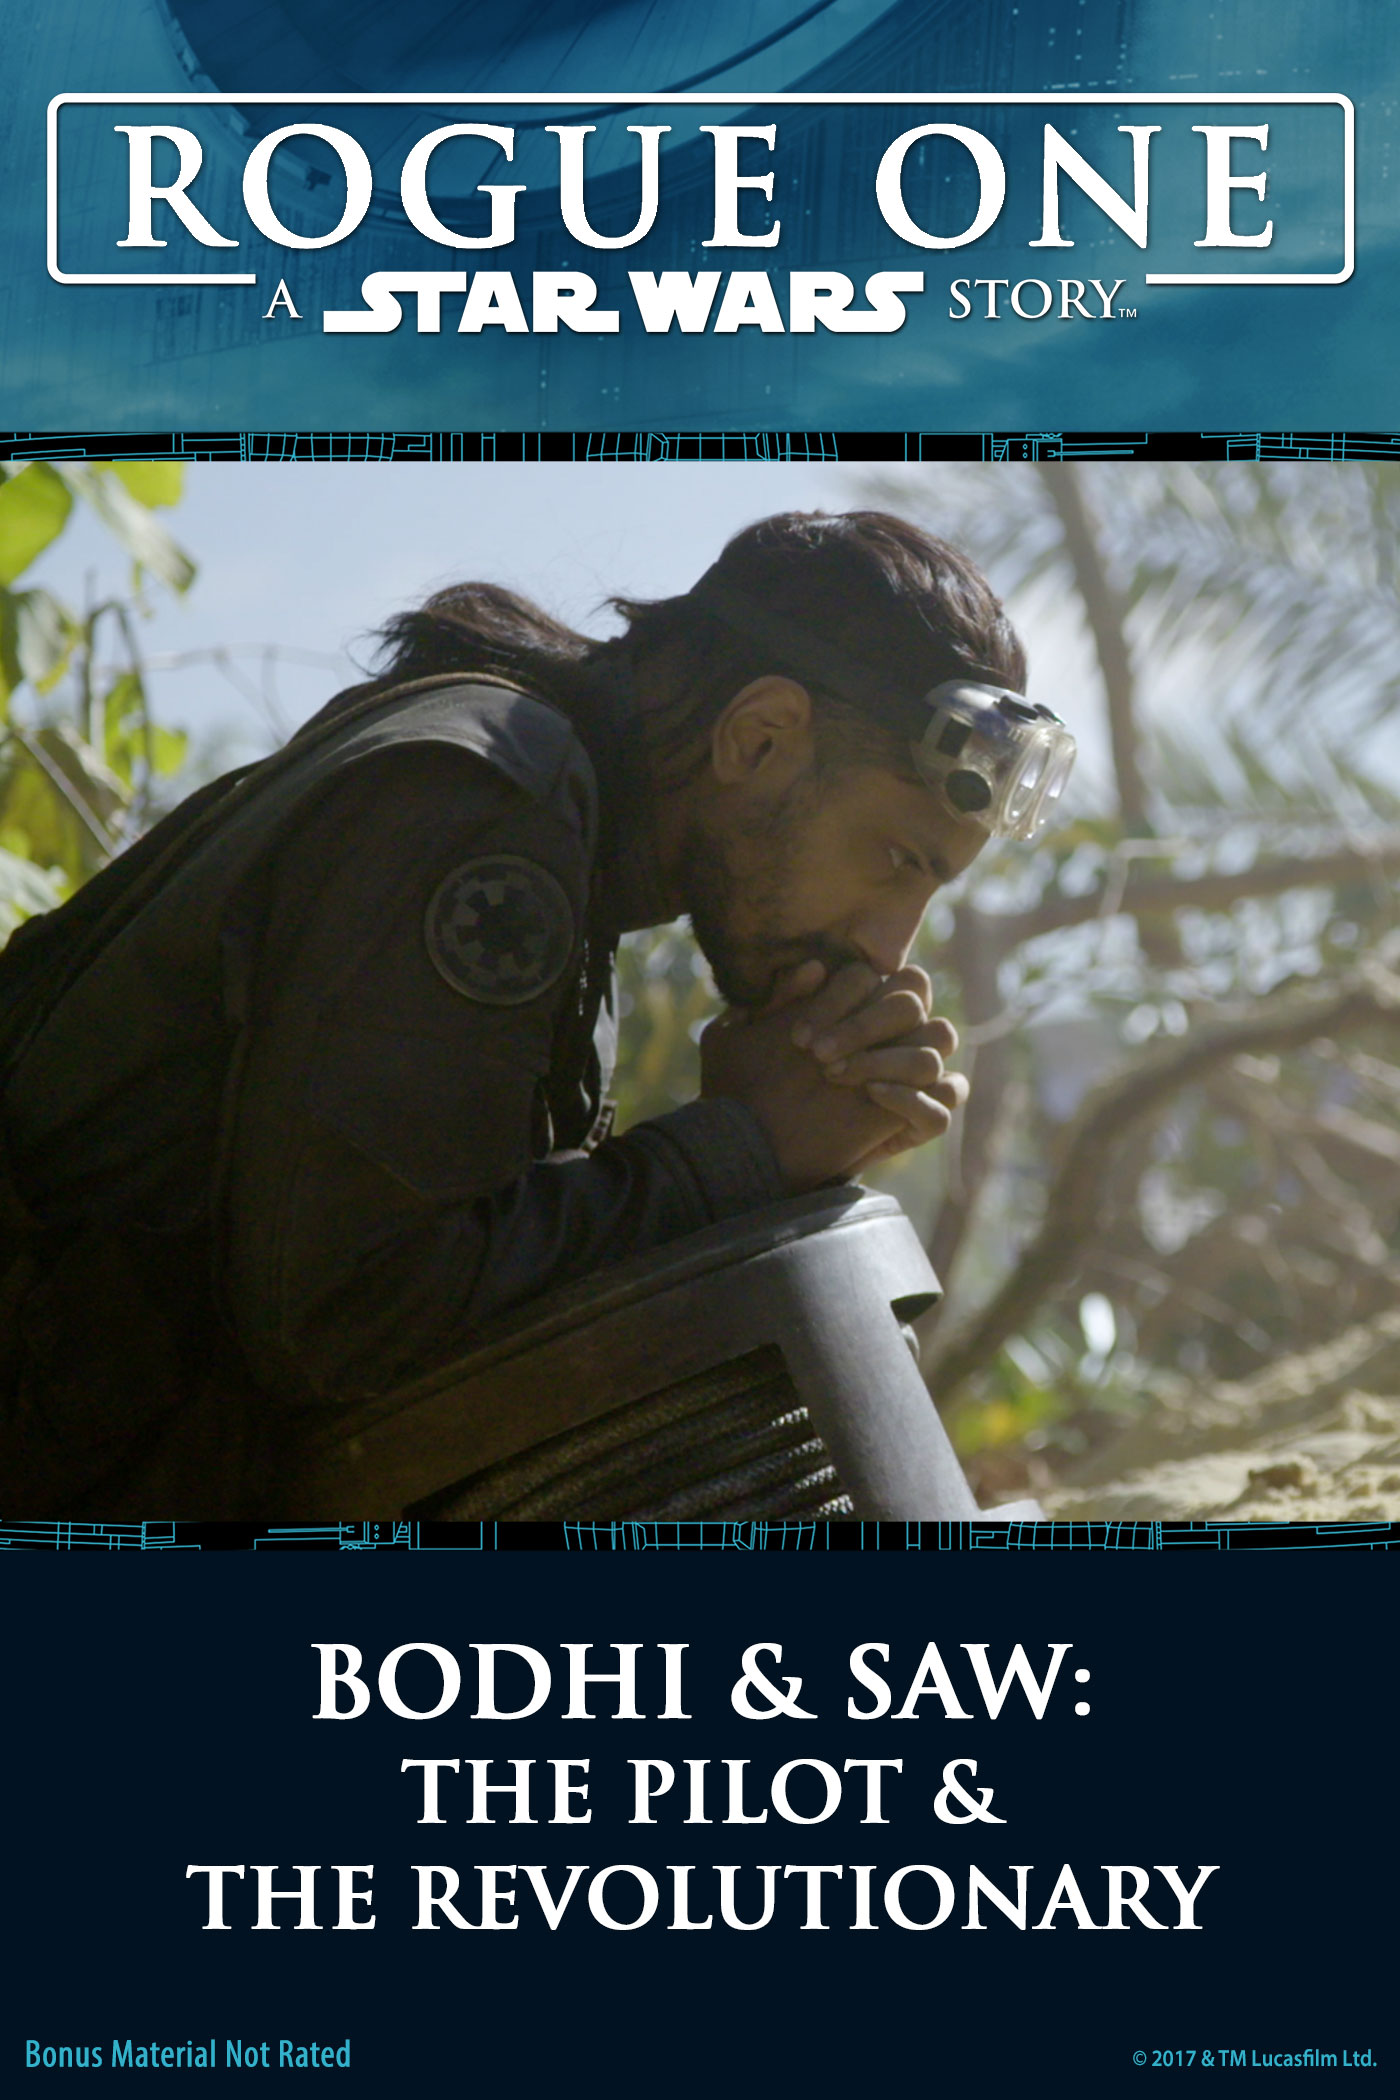 Bodhi & Saw: The Pilot & The Revolutionary